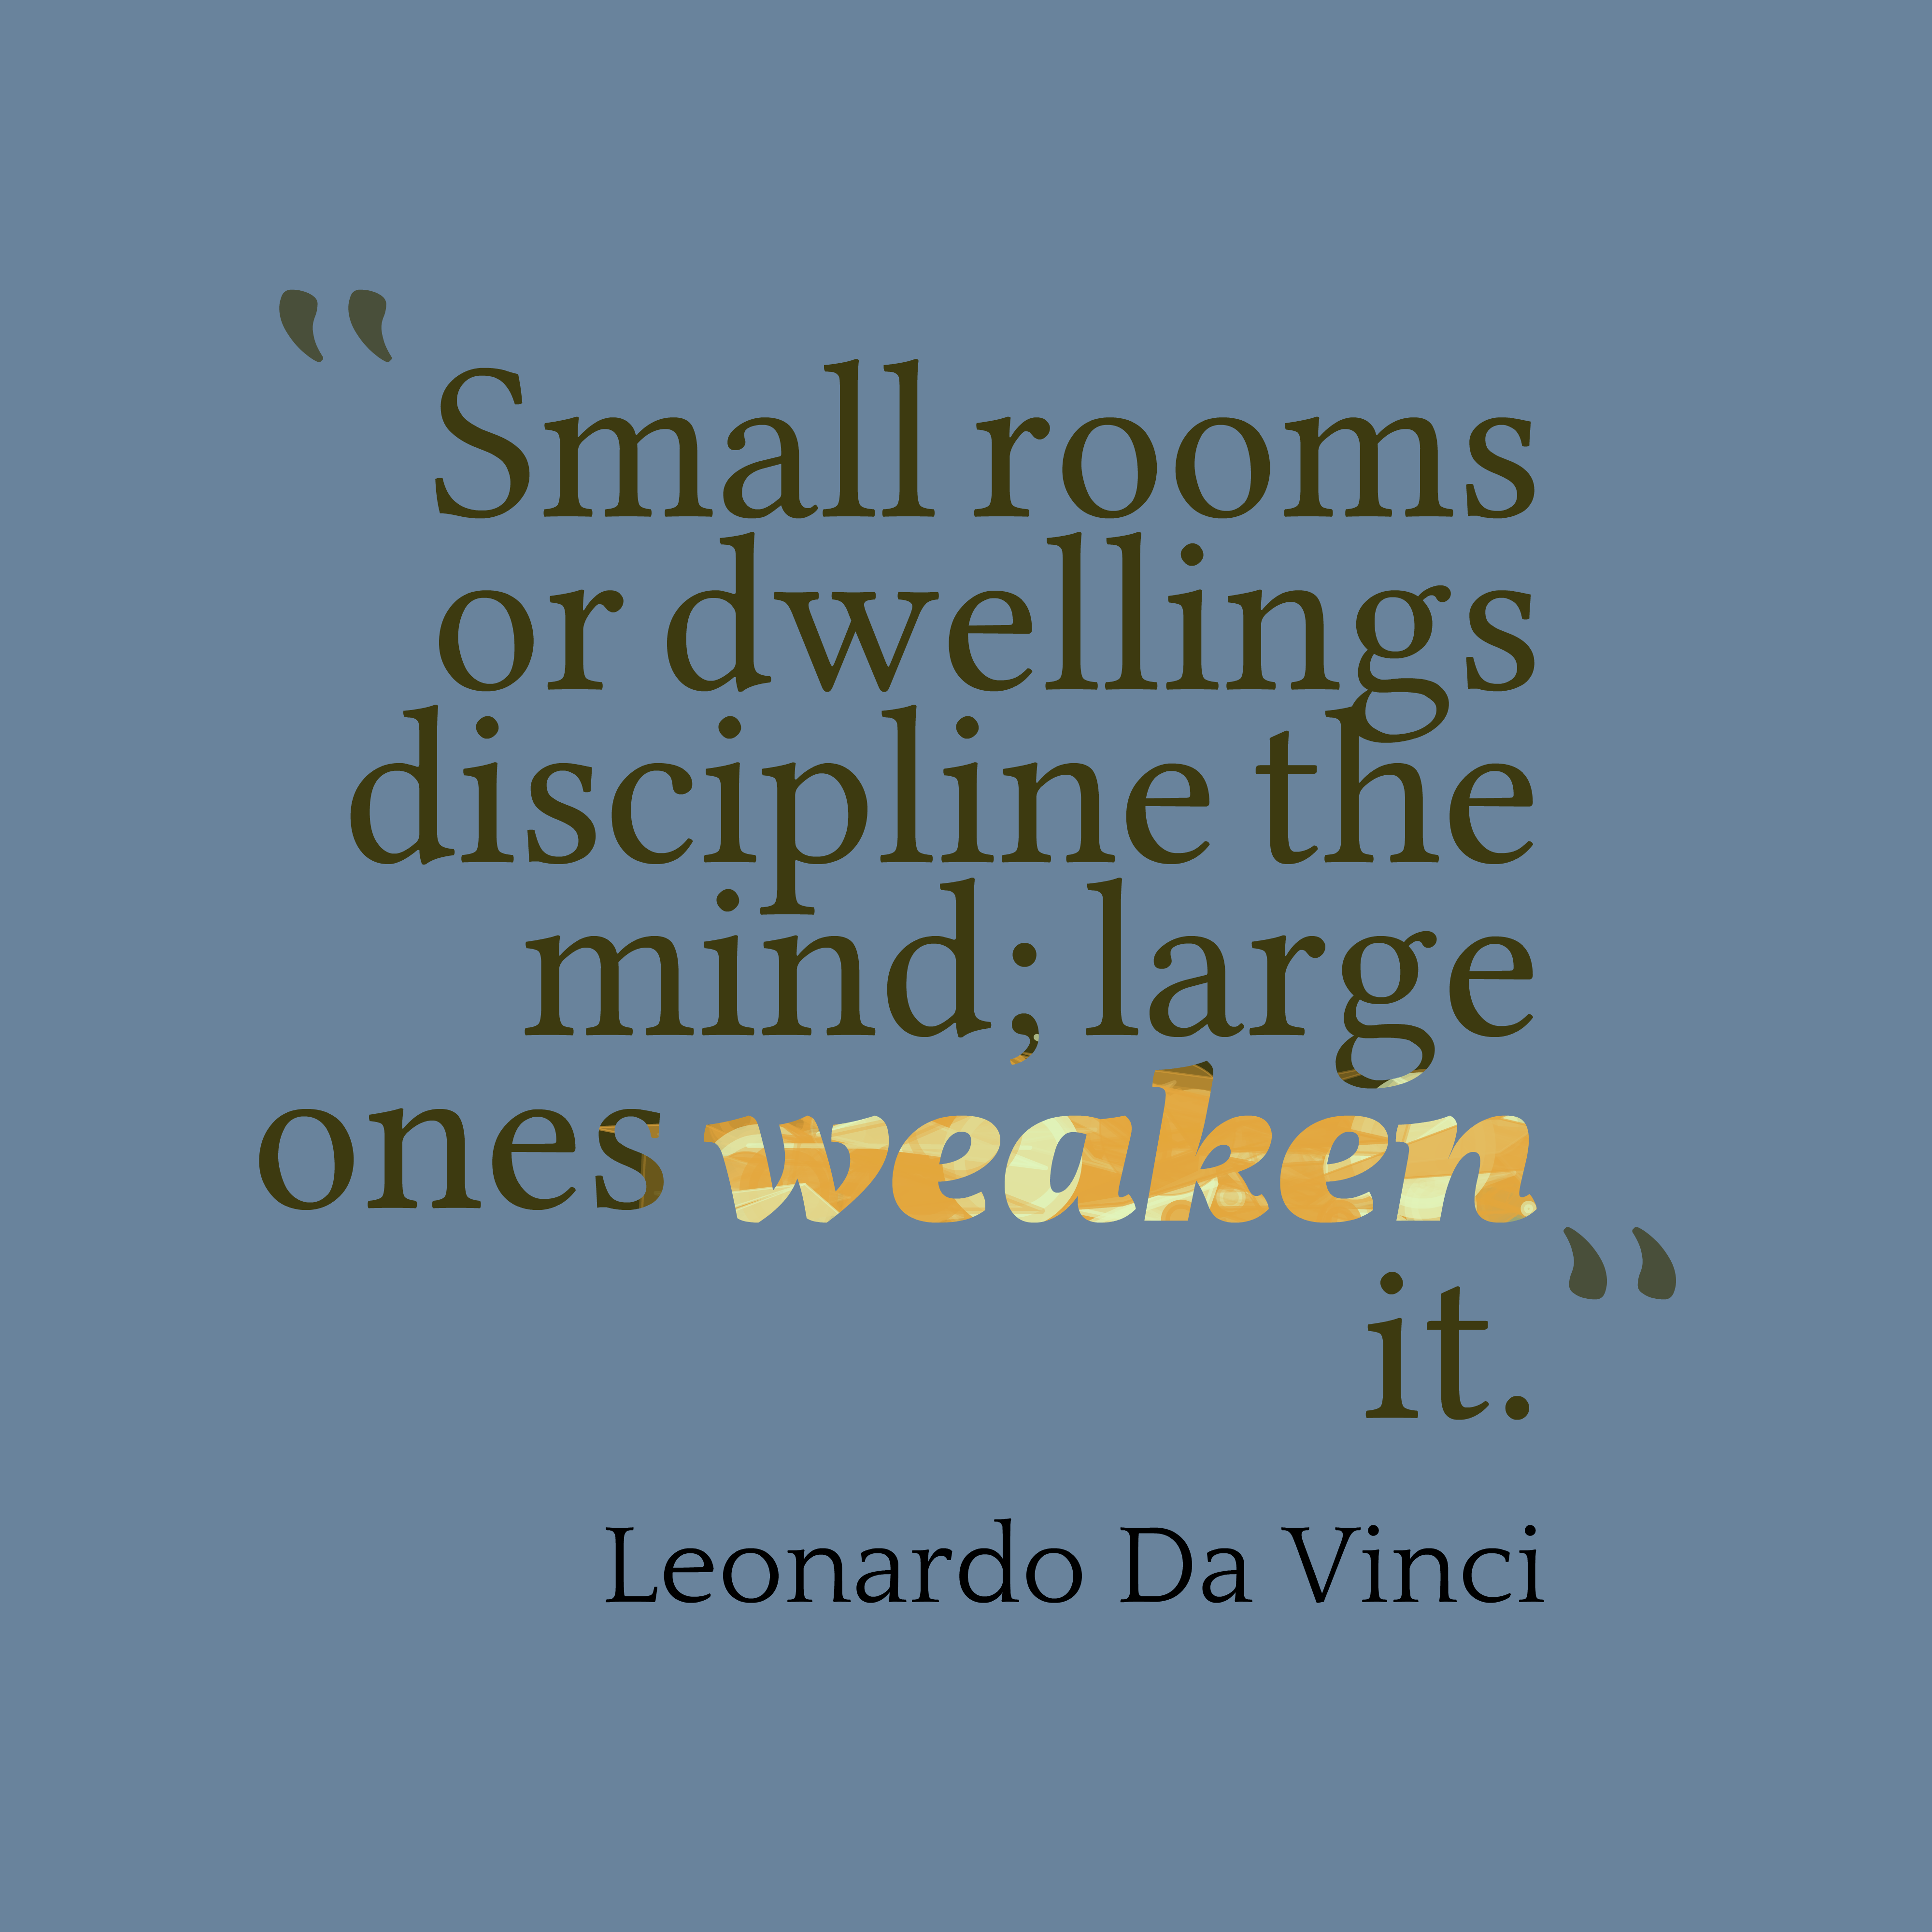 Quotes image of Small rooms or dwellings discipline the mind; large ones weaken it.